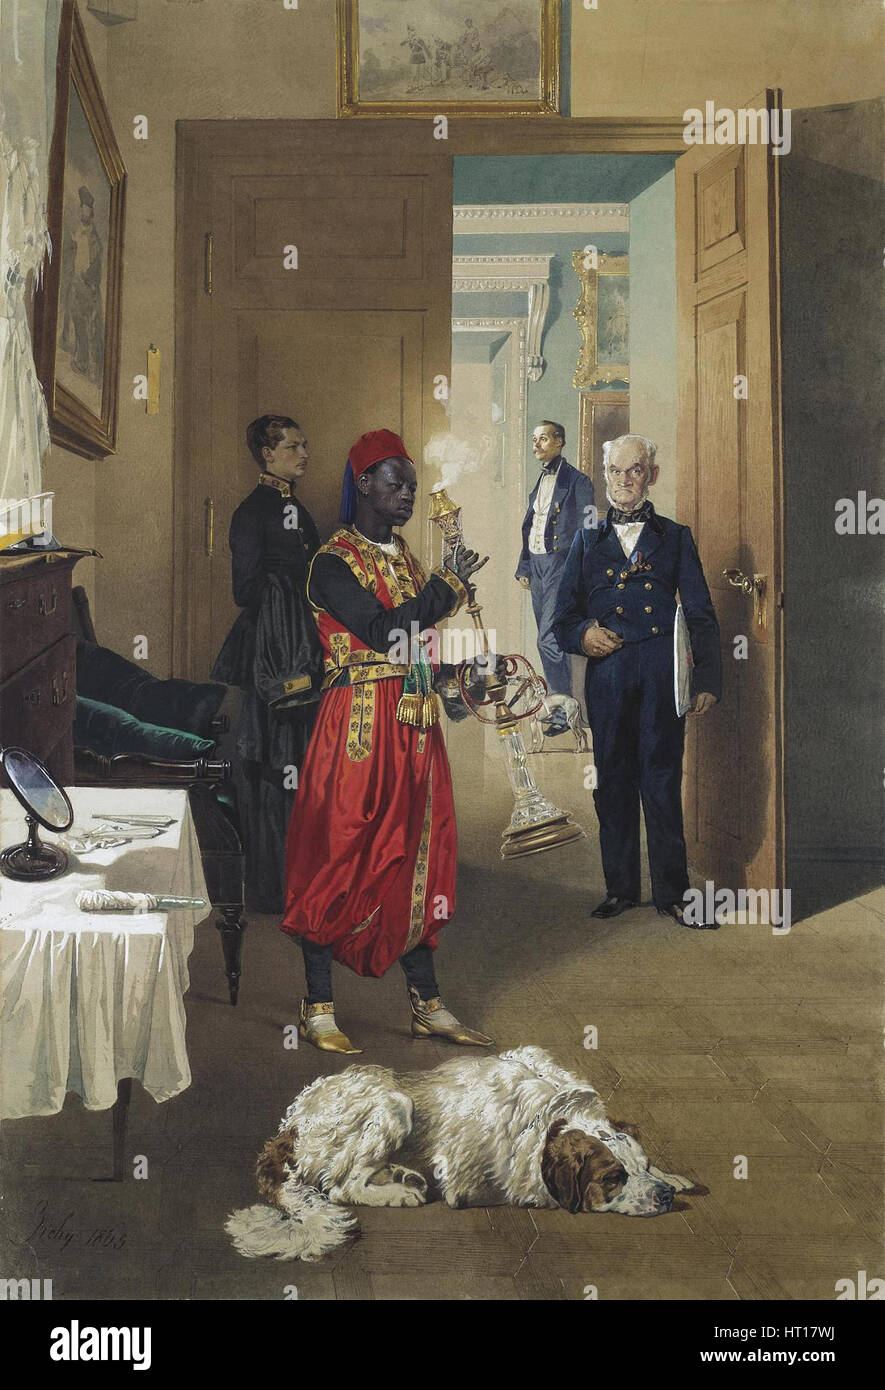 Foyer of the Great Palace in Tsarskoye Selo, 1865. Artist: Zichy, Mihály (1827-1906) - Stock Image